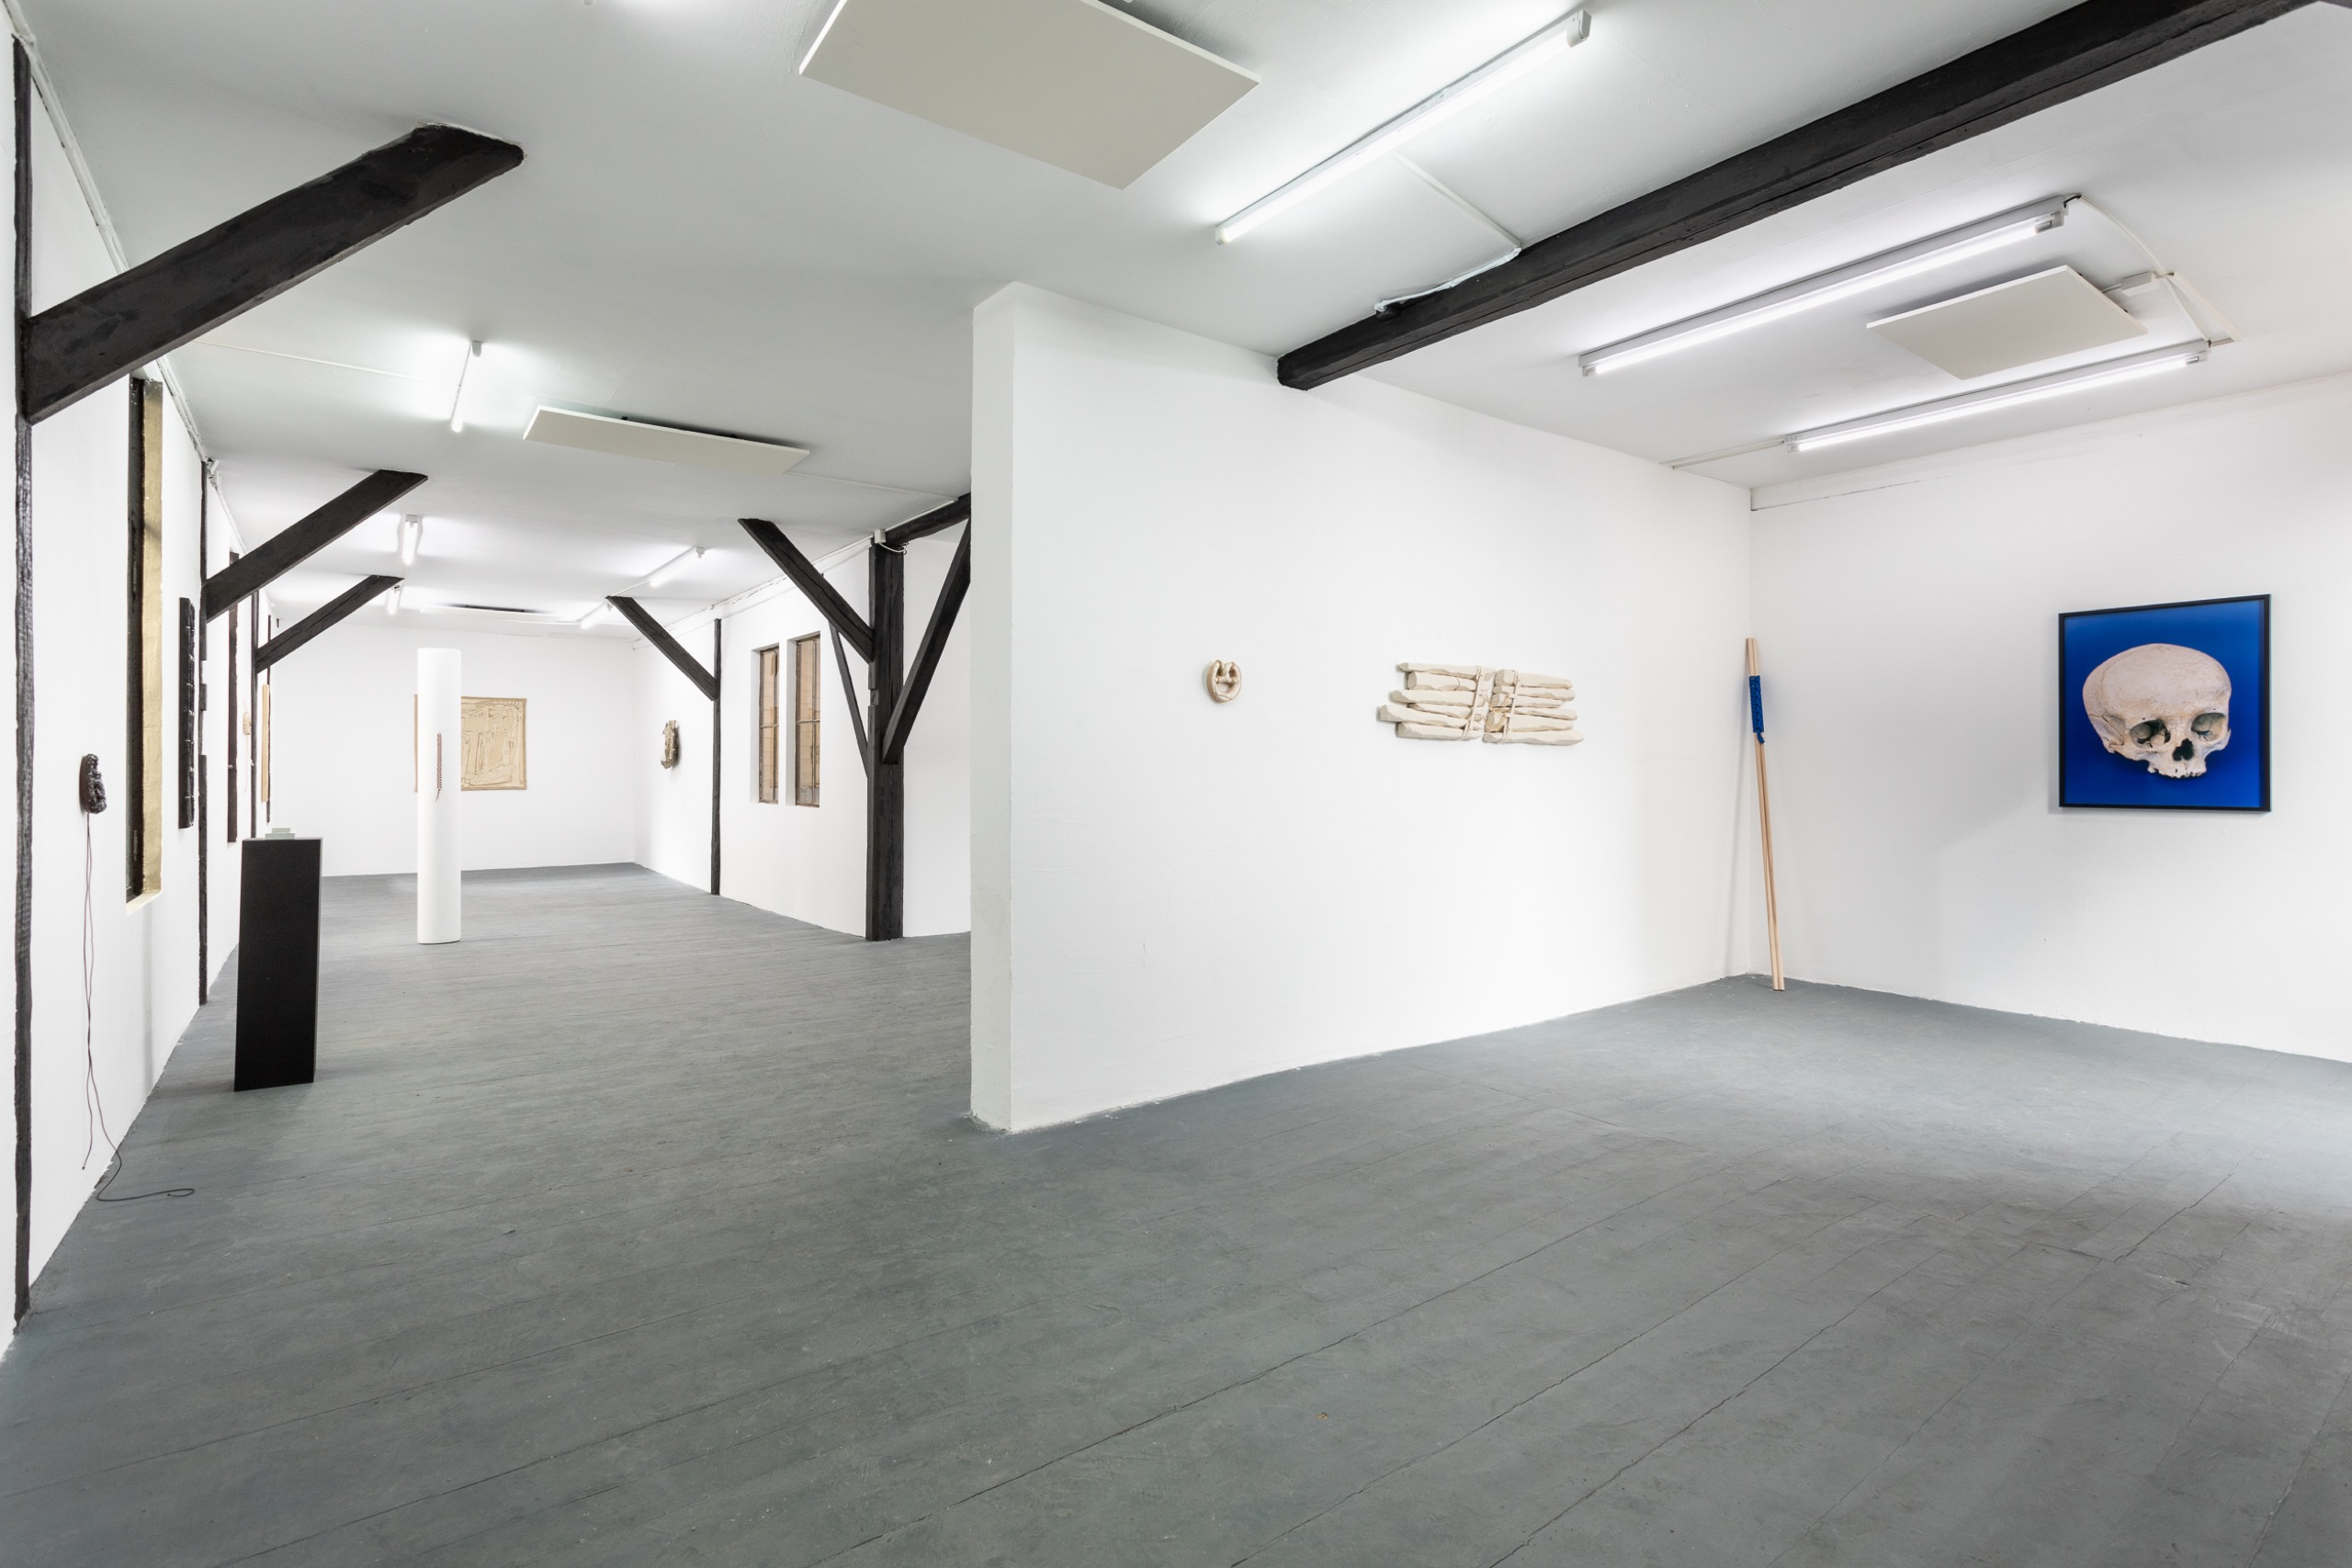 Have Sanity, Installation view, upstairs space.